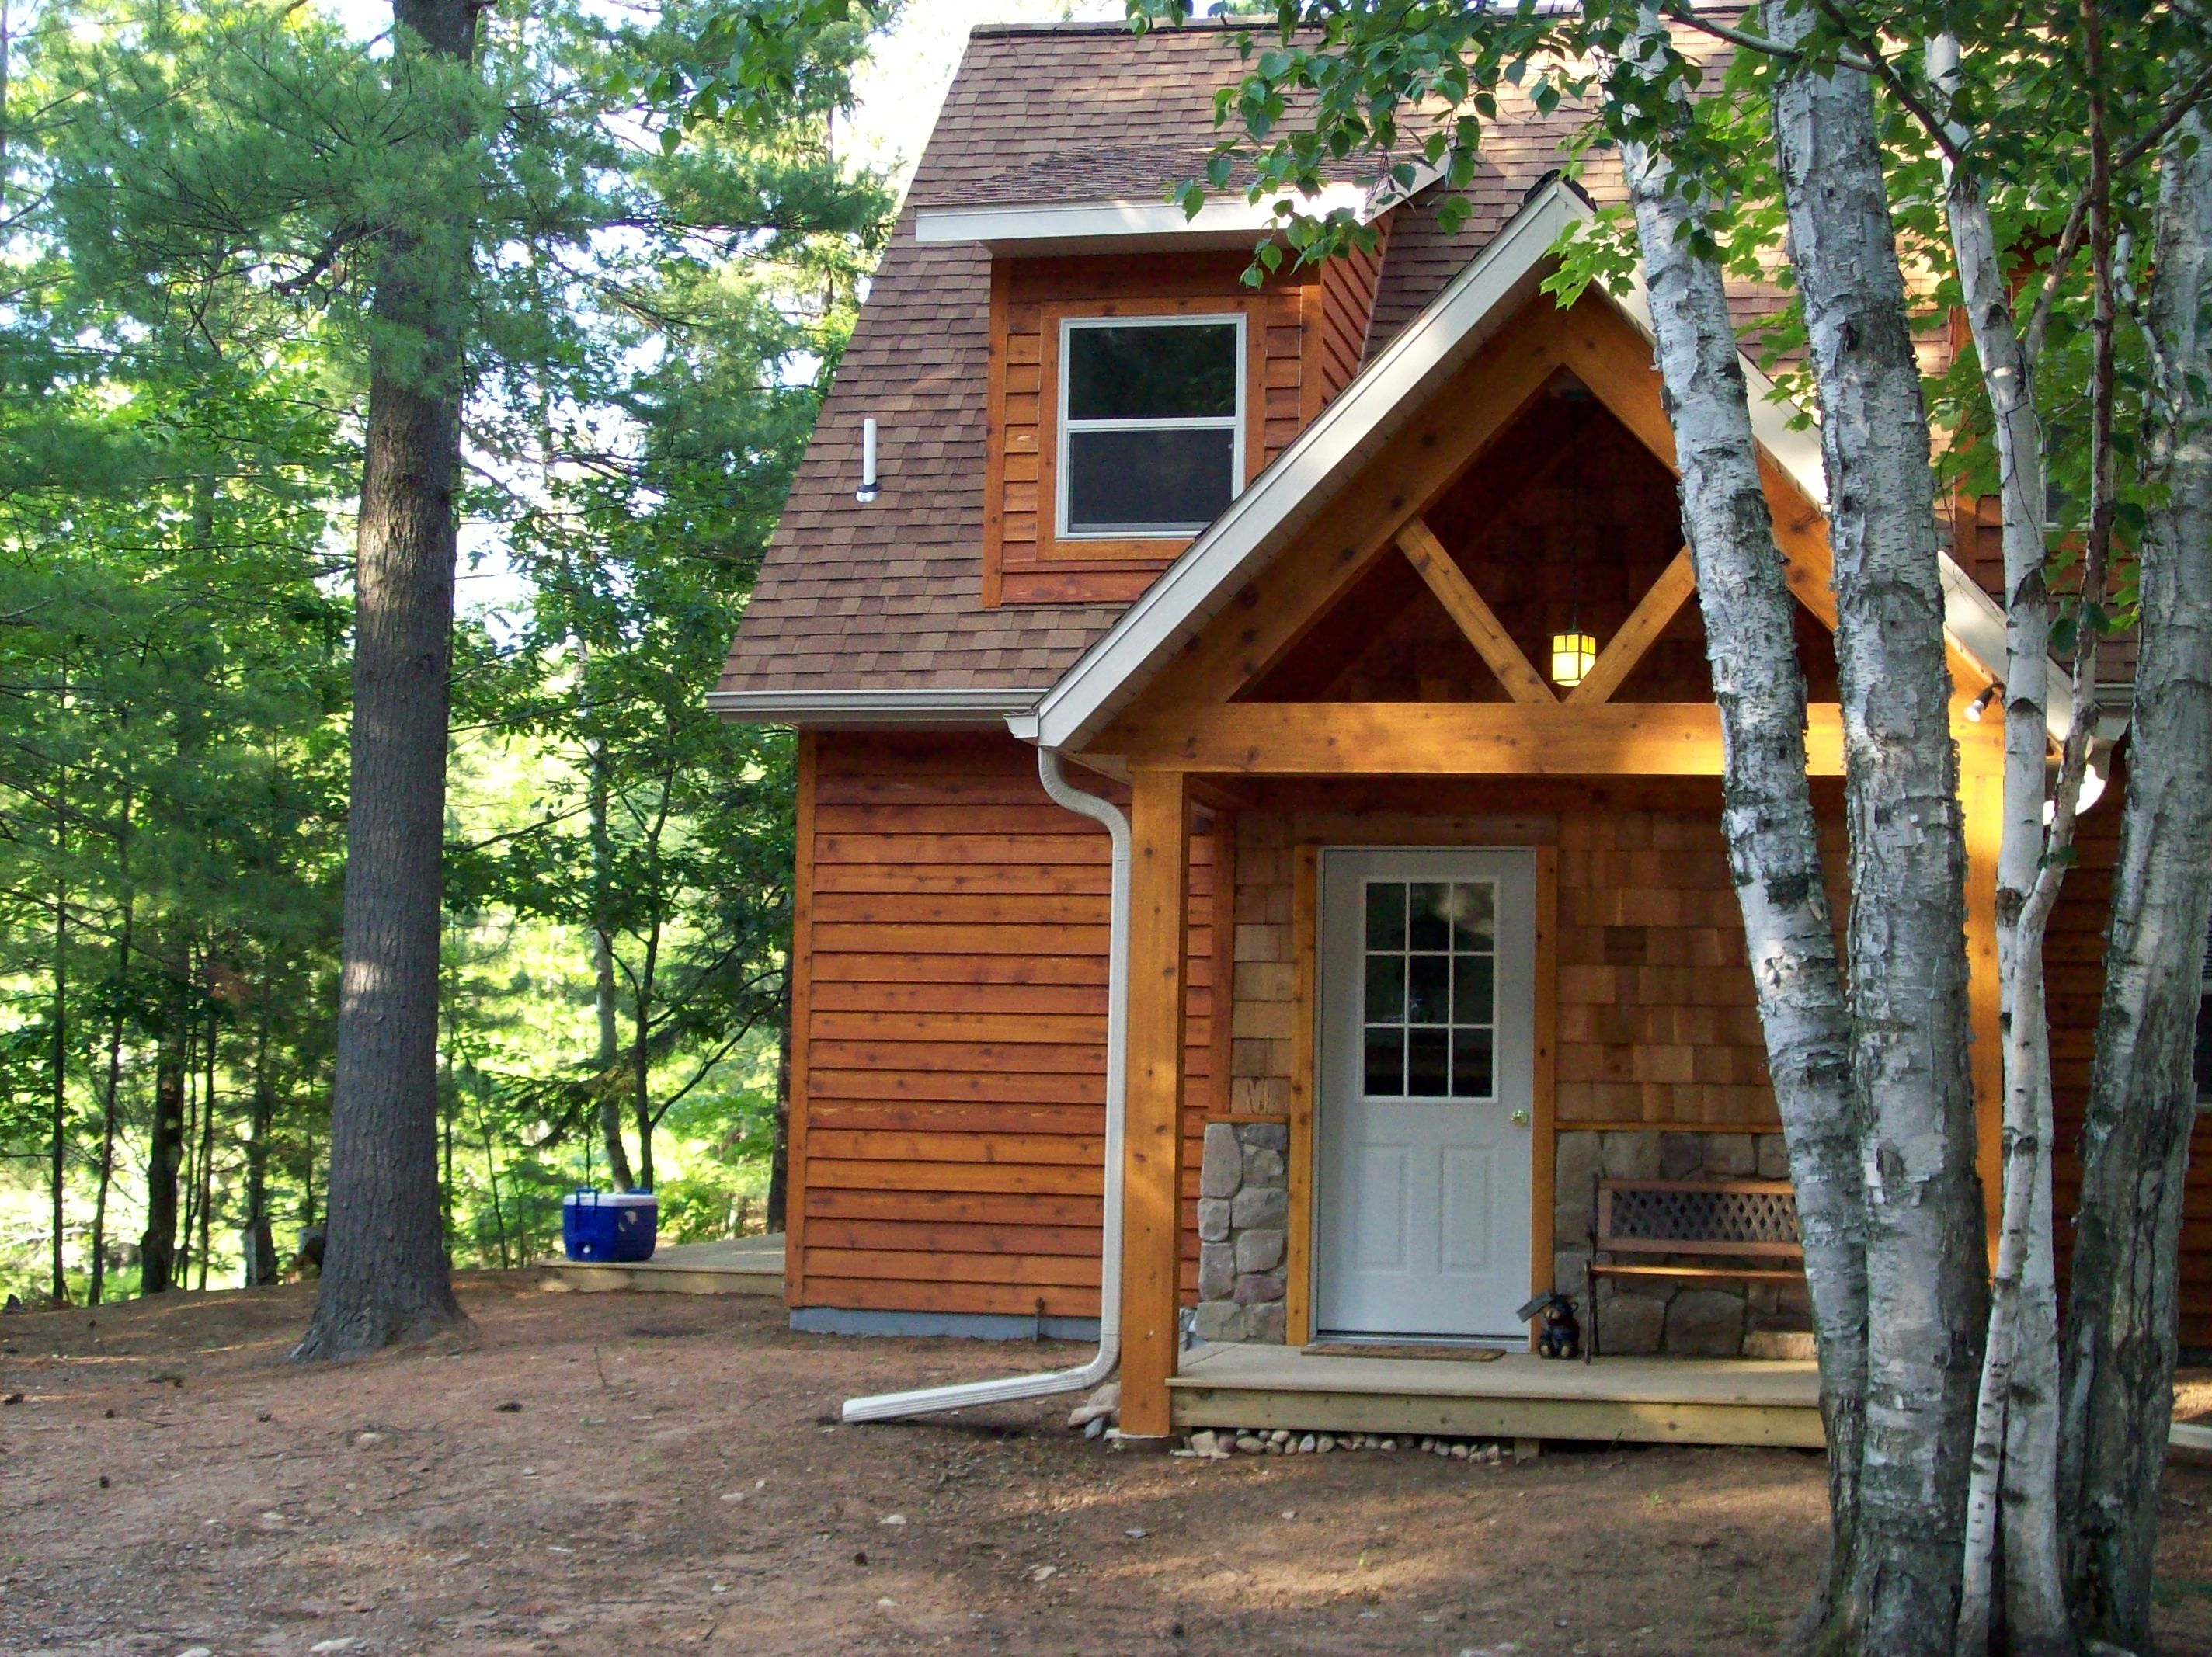 designing forest fabulous your cabins design in cabin service luxury about own remodel home montana excellent with rentals ideas